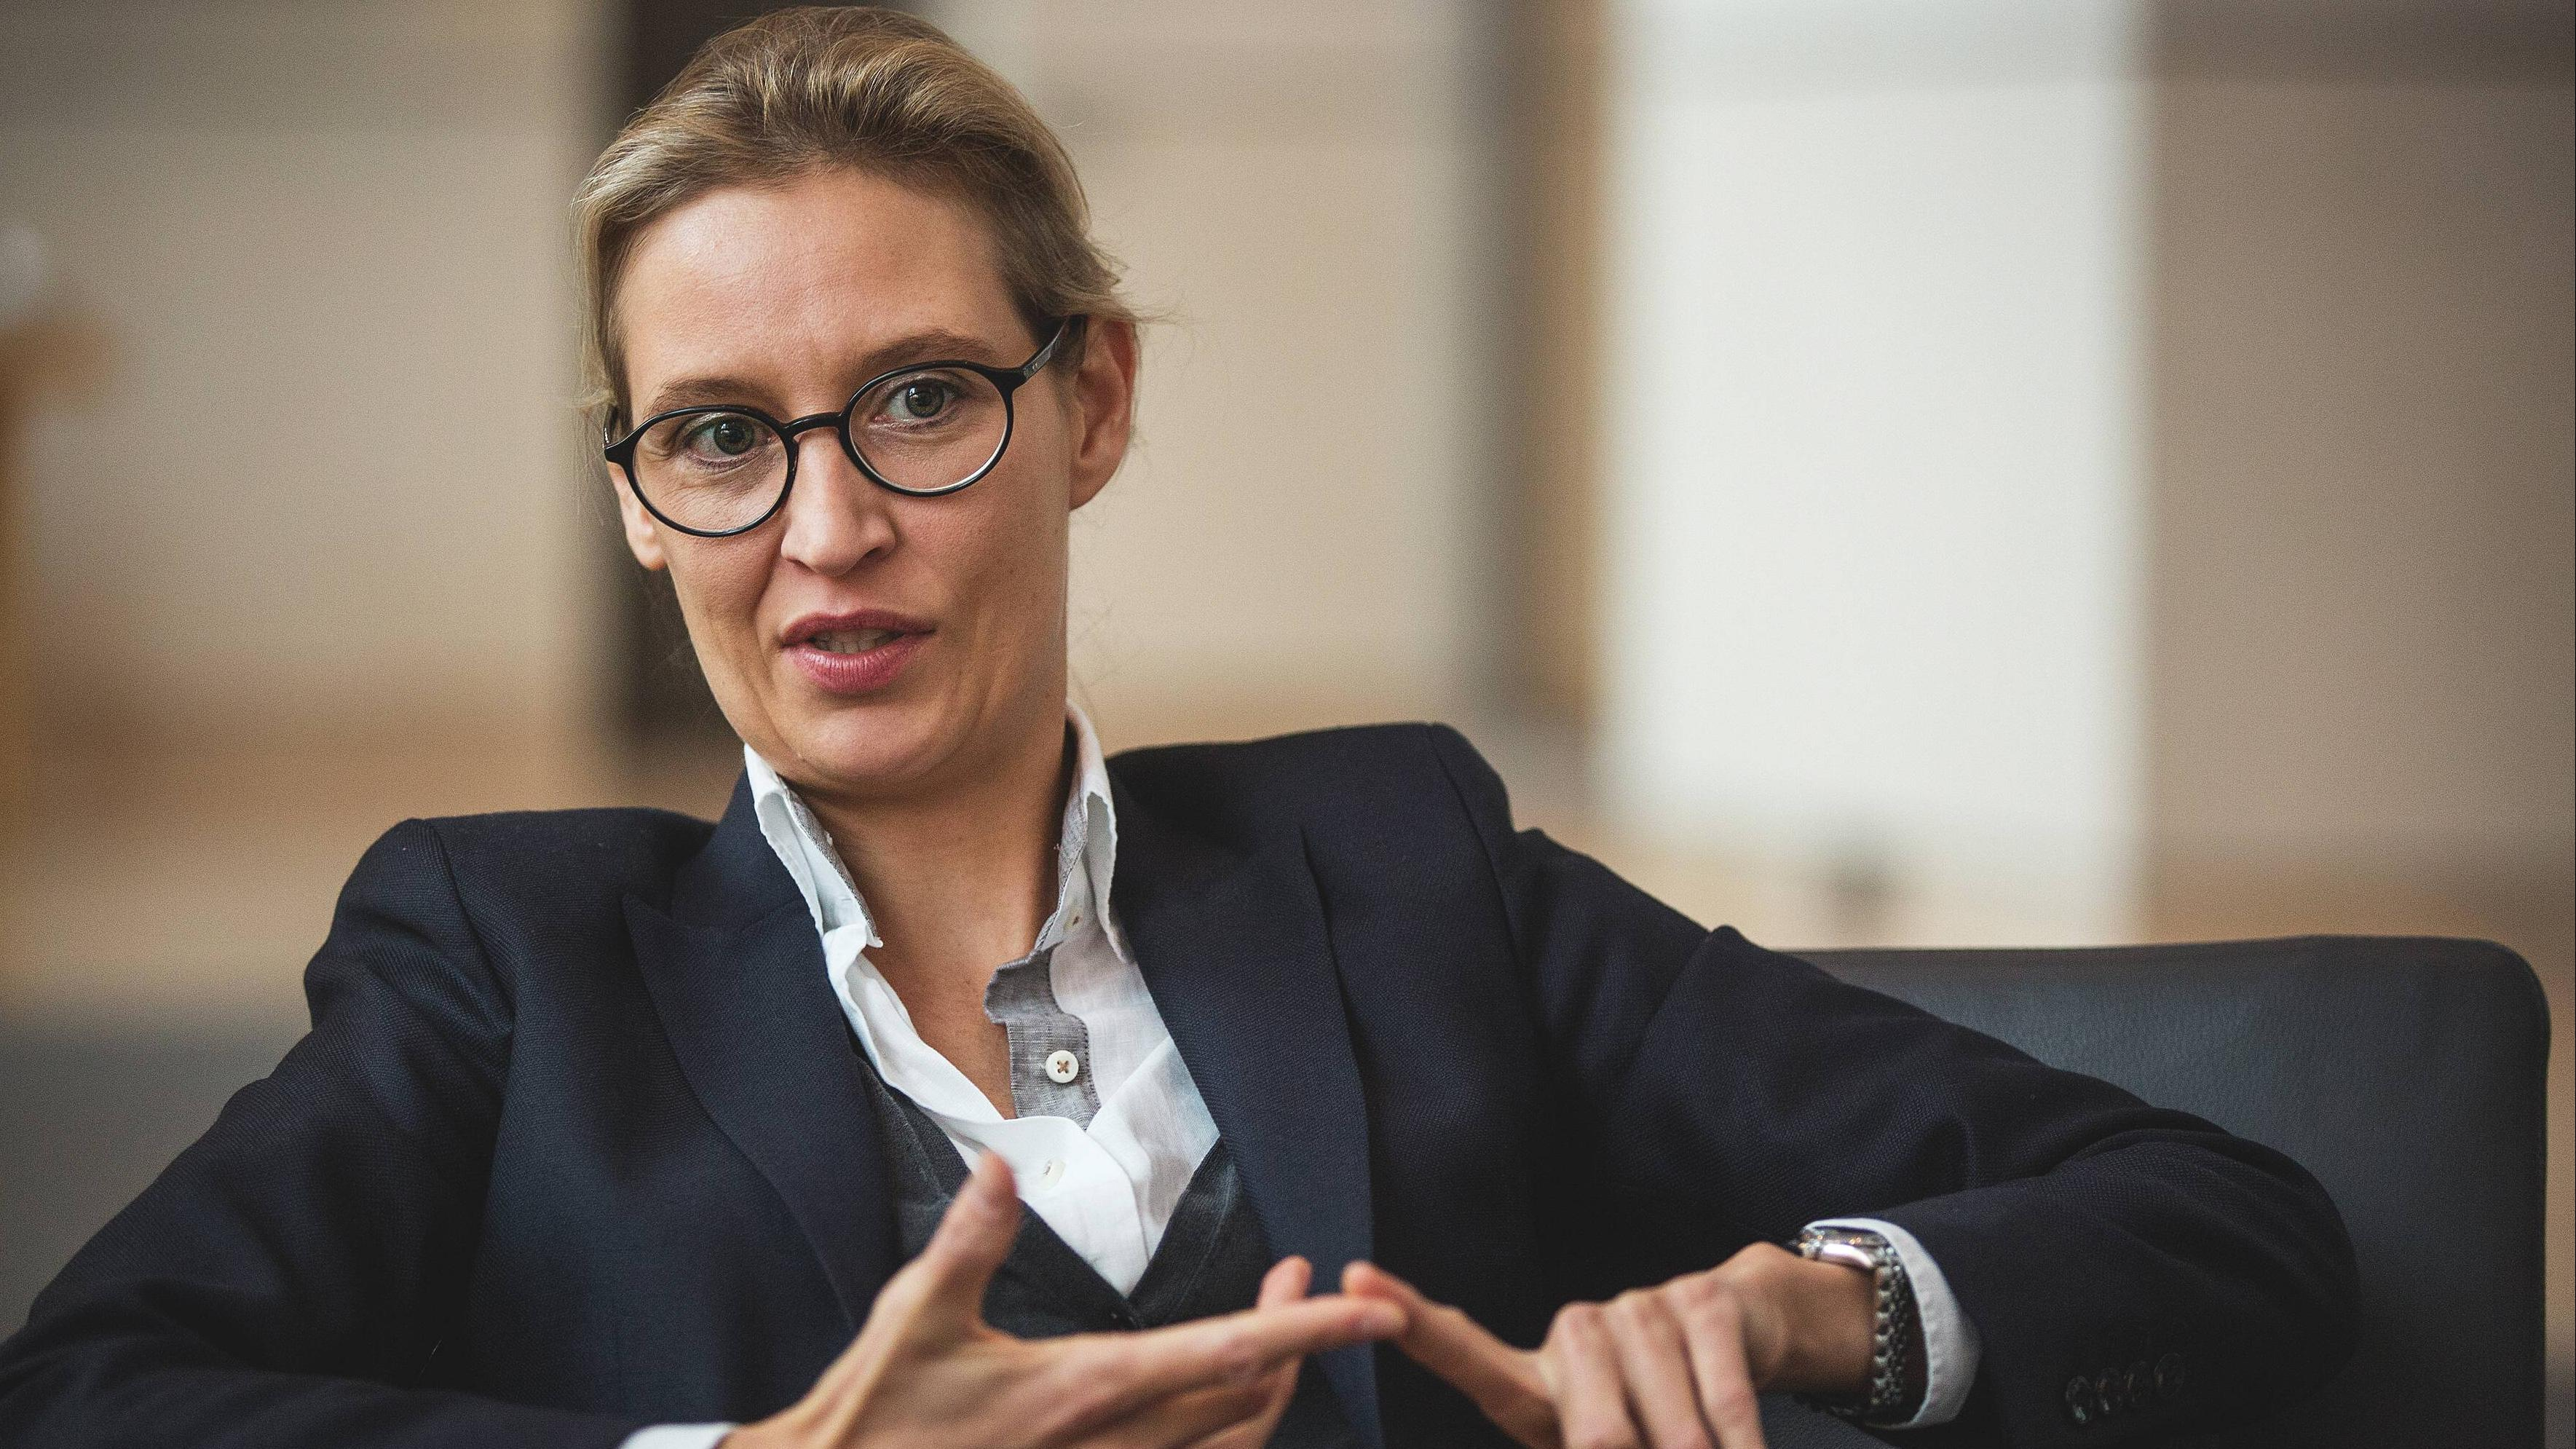 Nackt afd weidel Who is